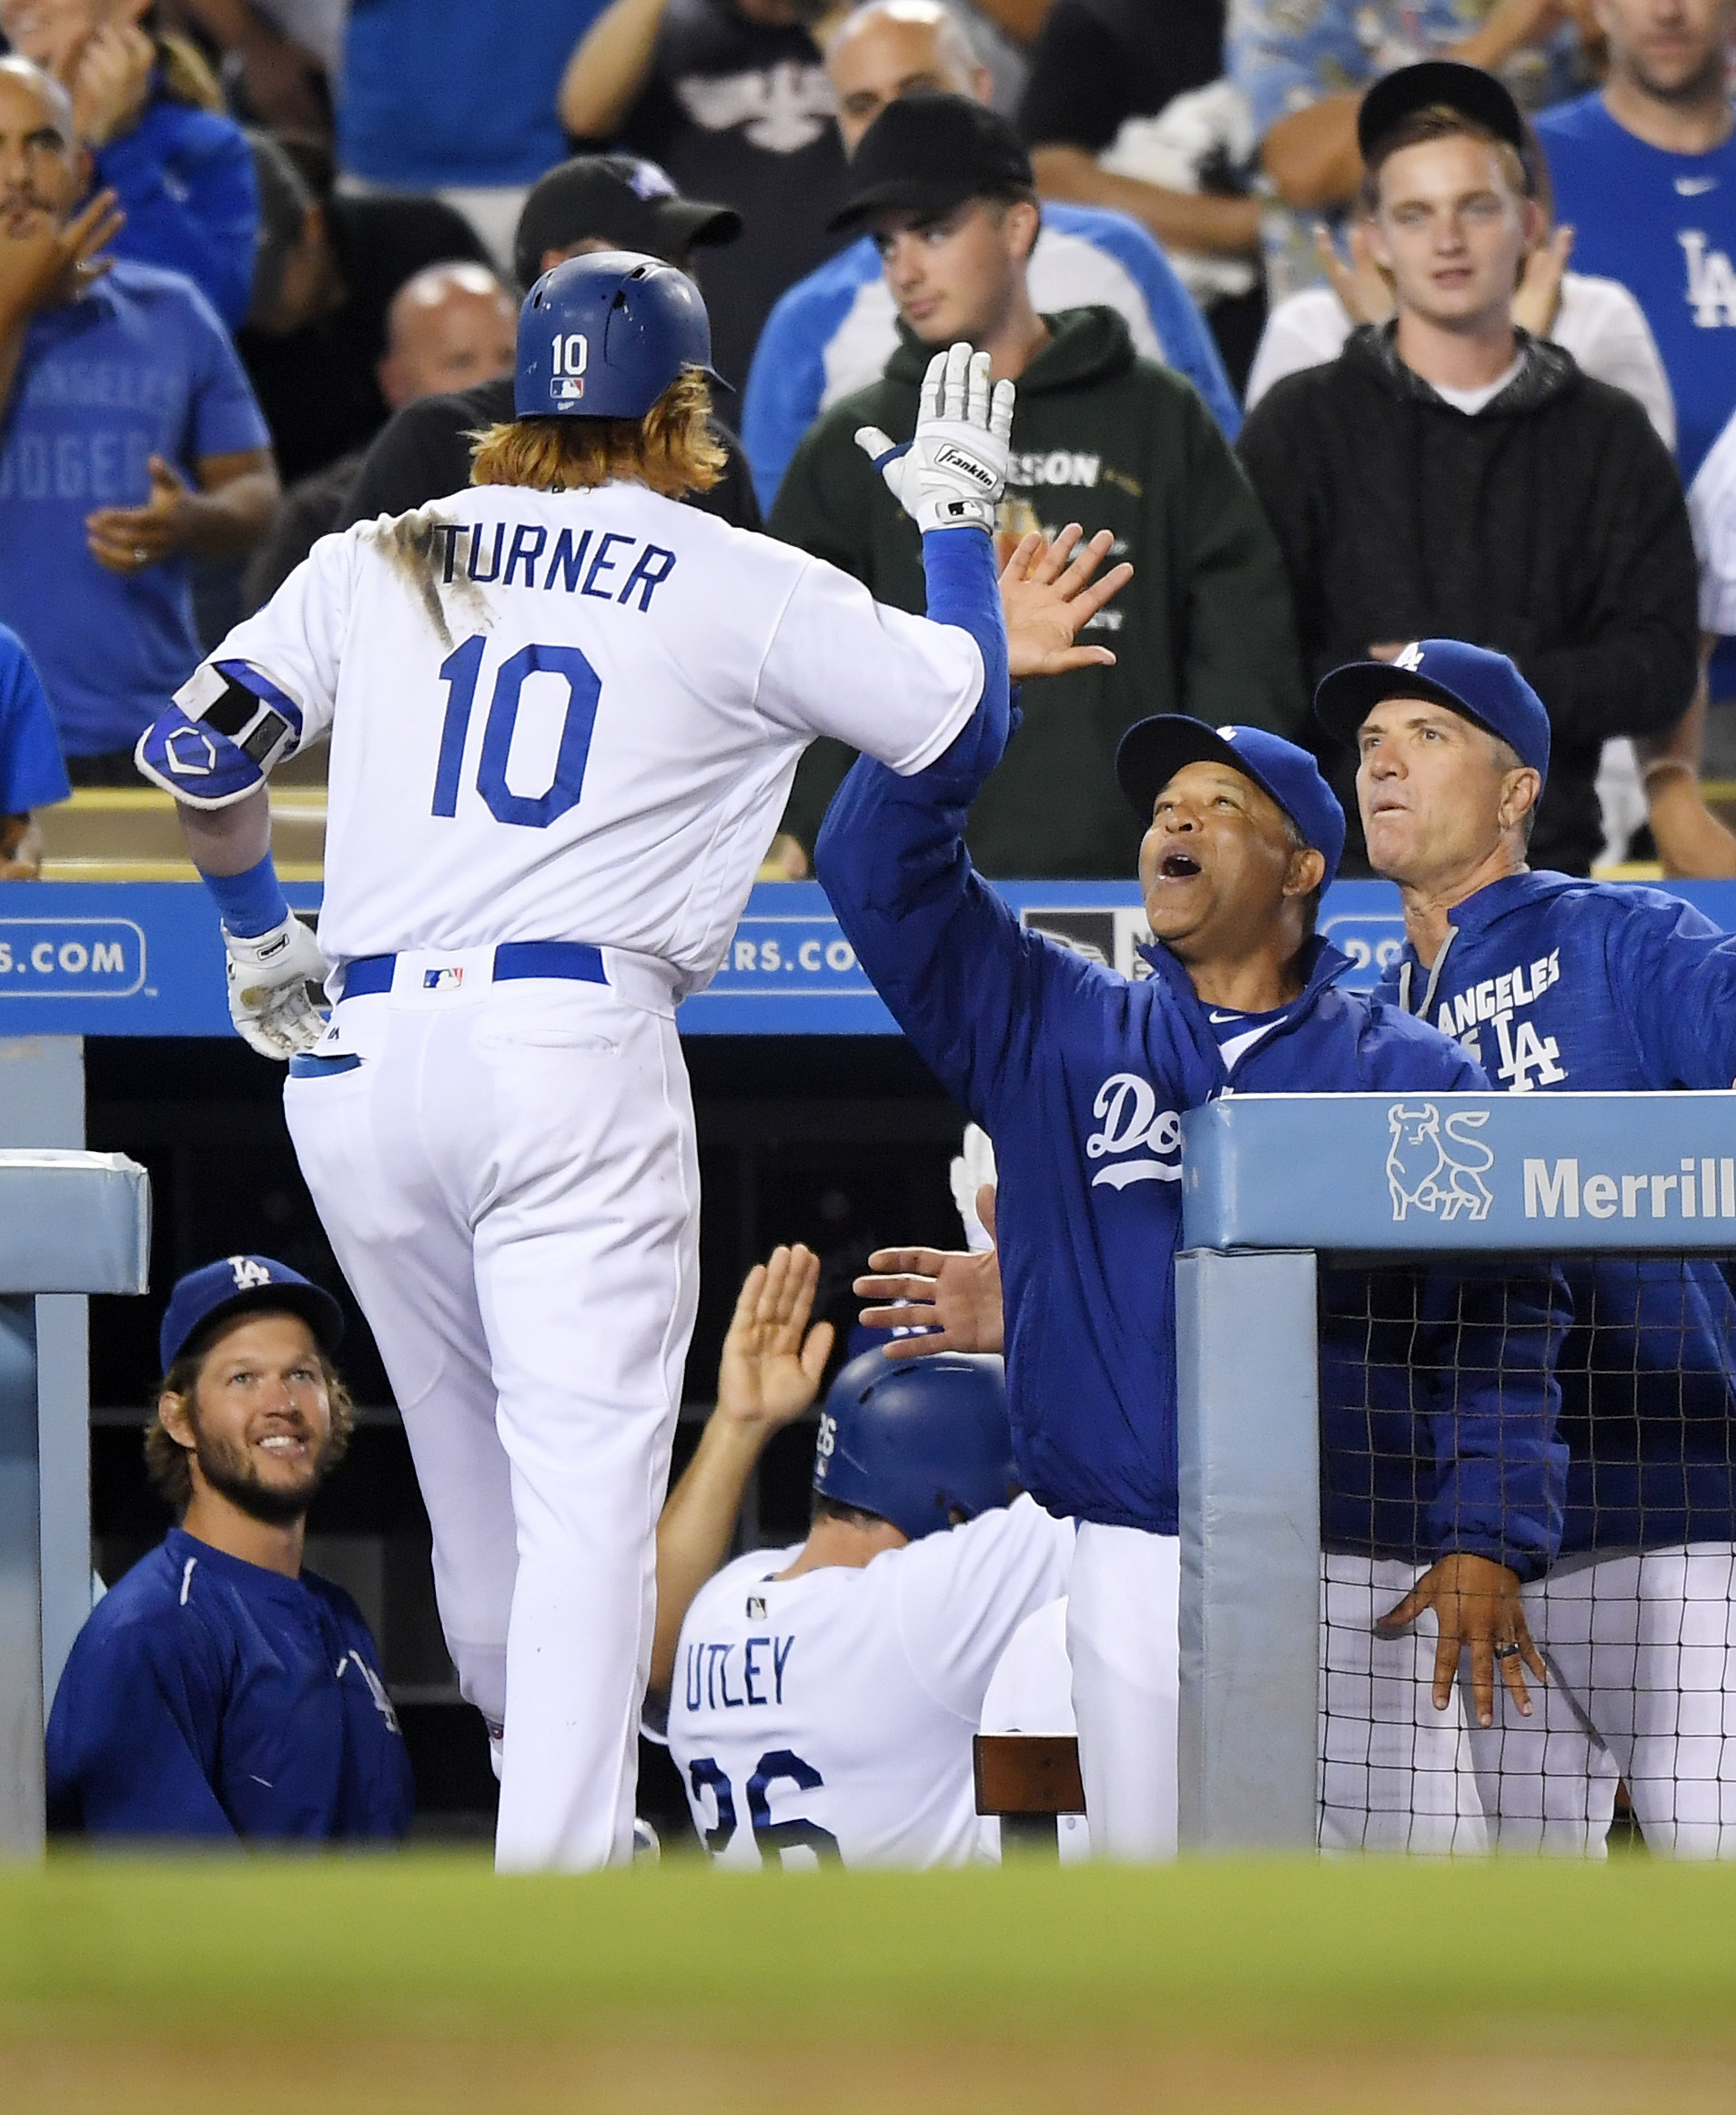 Los Angeles Dodgers' Justin Turner, left, is congratulated by manager Dave Roberts, second from right, and bench coach Bob Geren after hitting a two-run home run during the fourth inning of a baseball game against the Philadelphia PHillies, Tuesday, Aug.